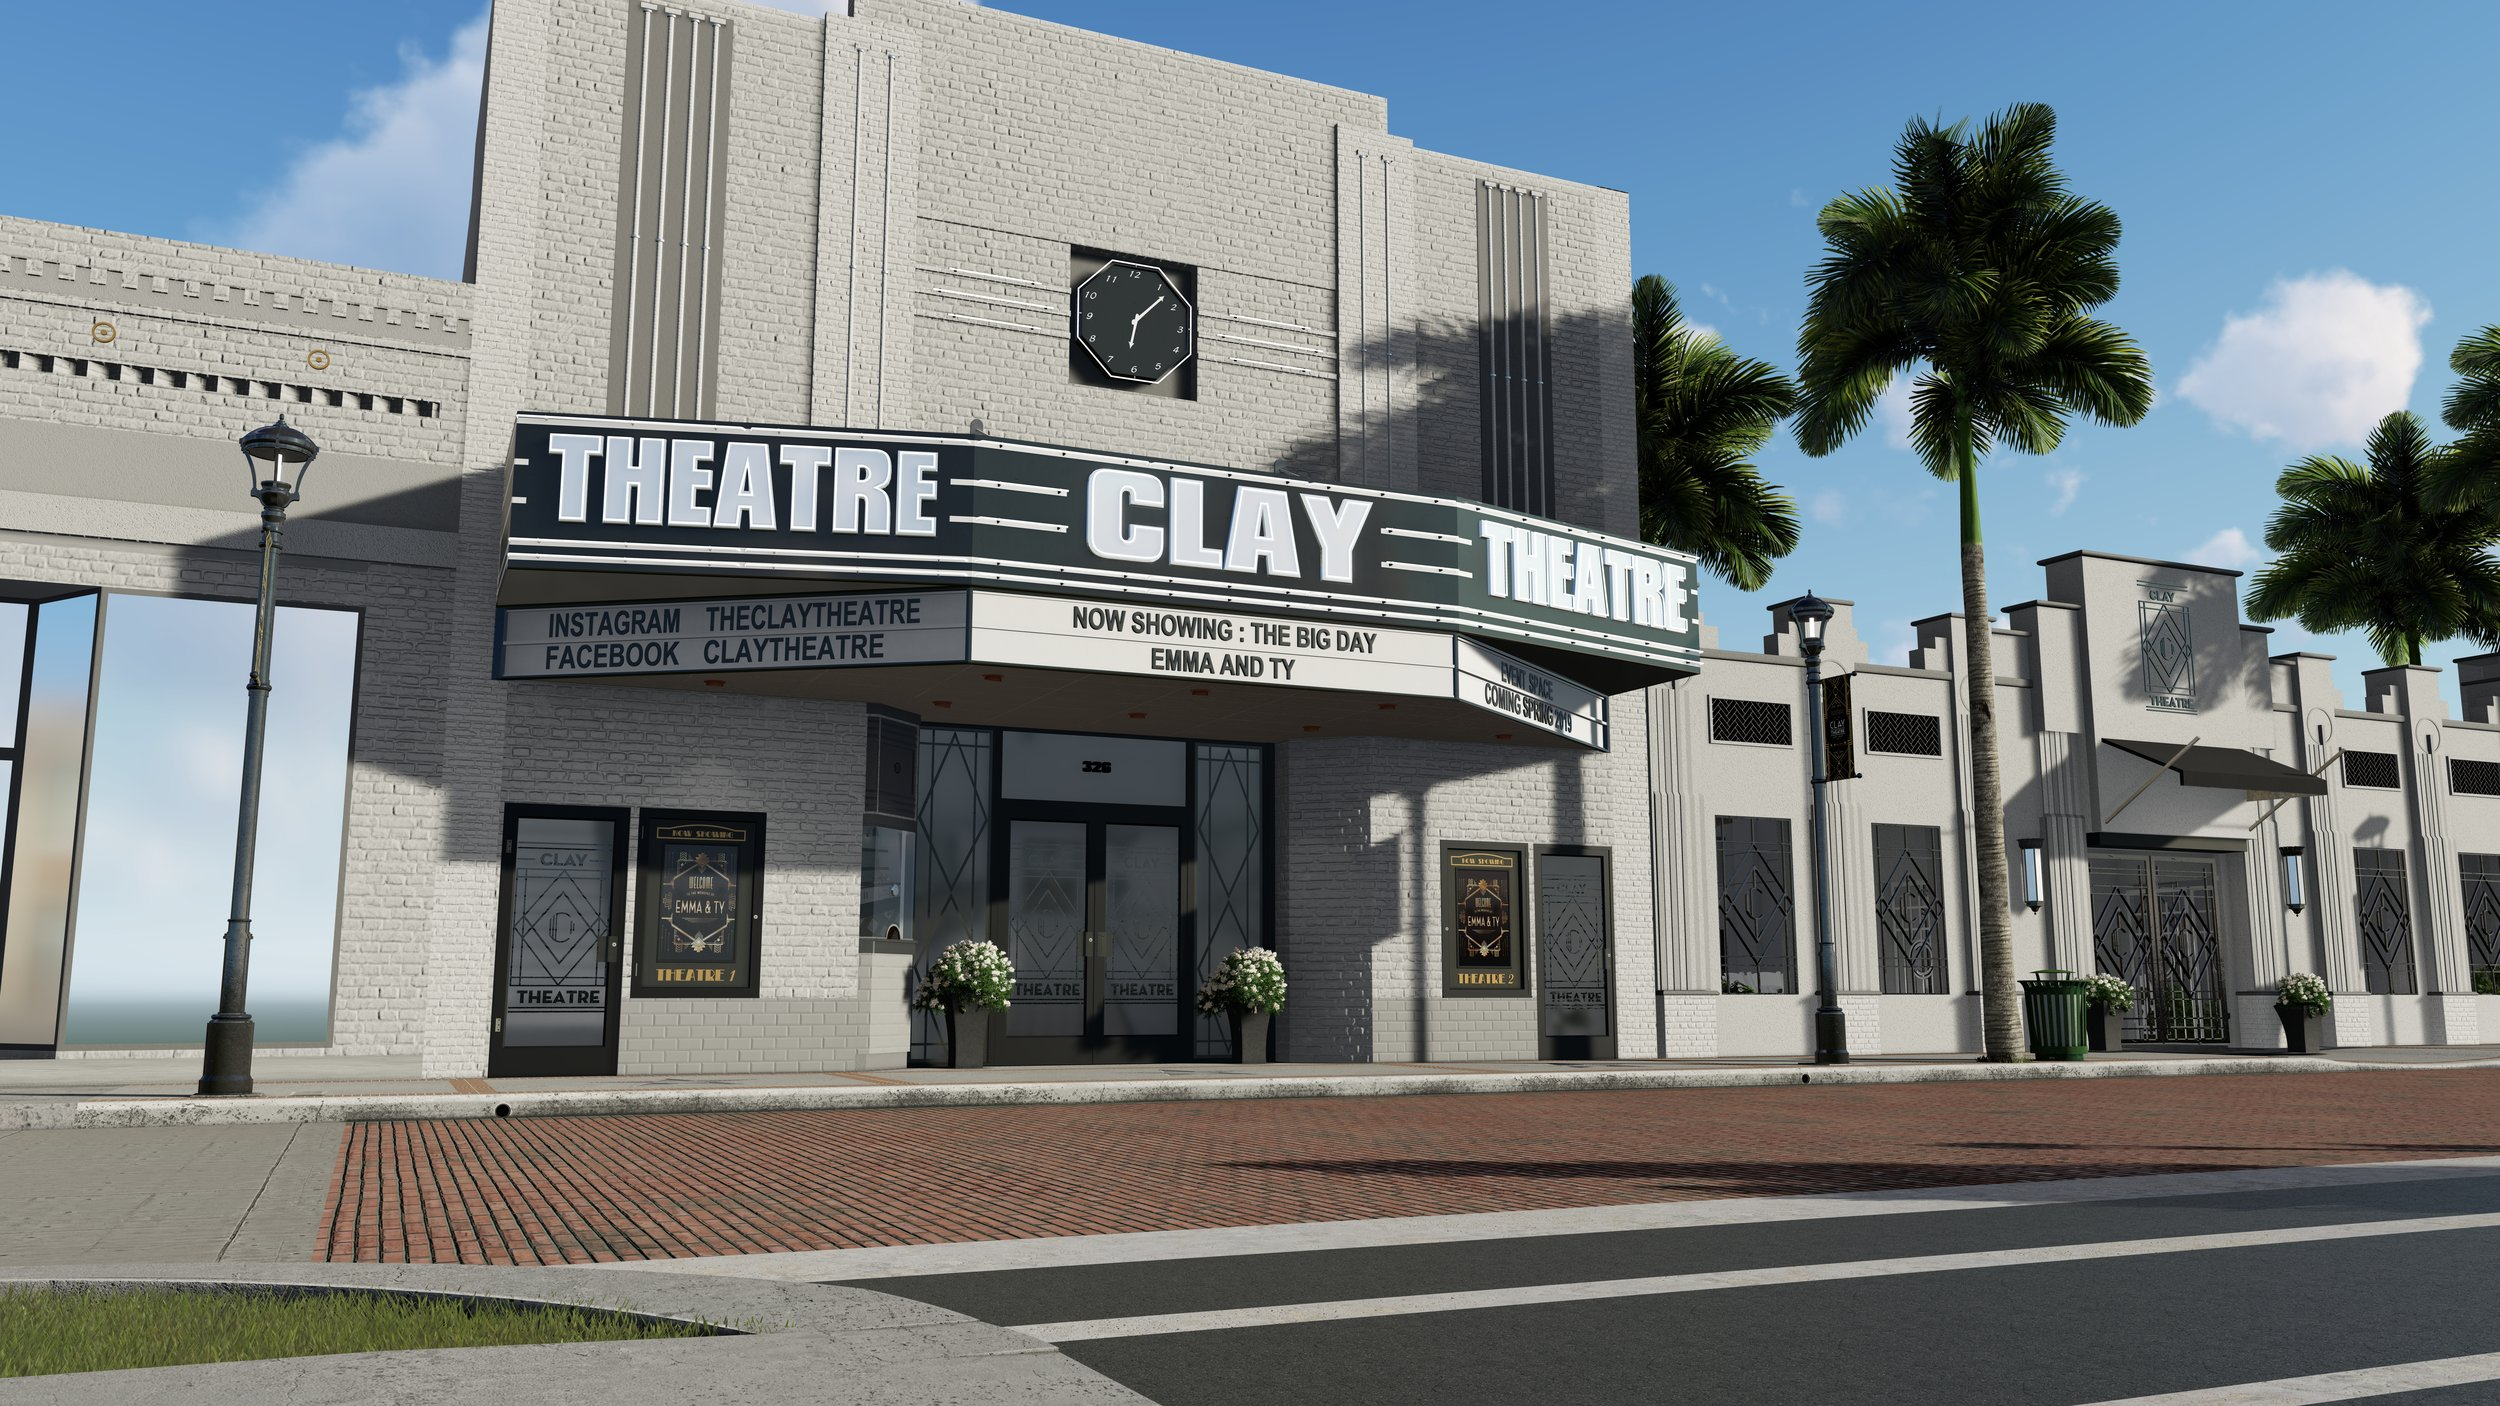 20180918_clay theatre front perspective.jpg